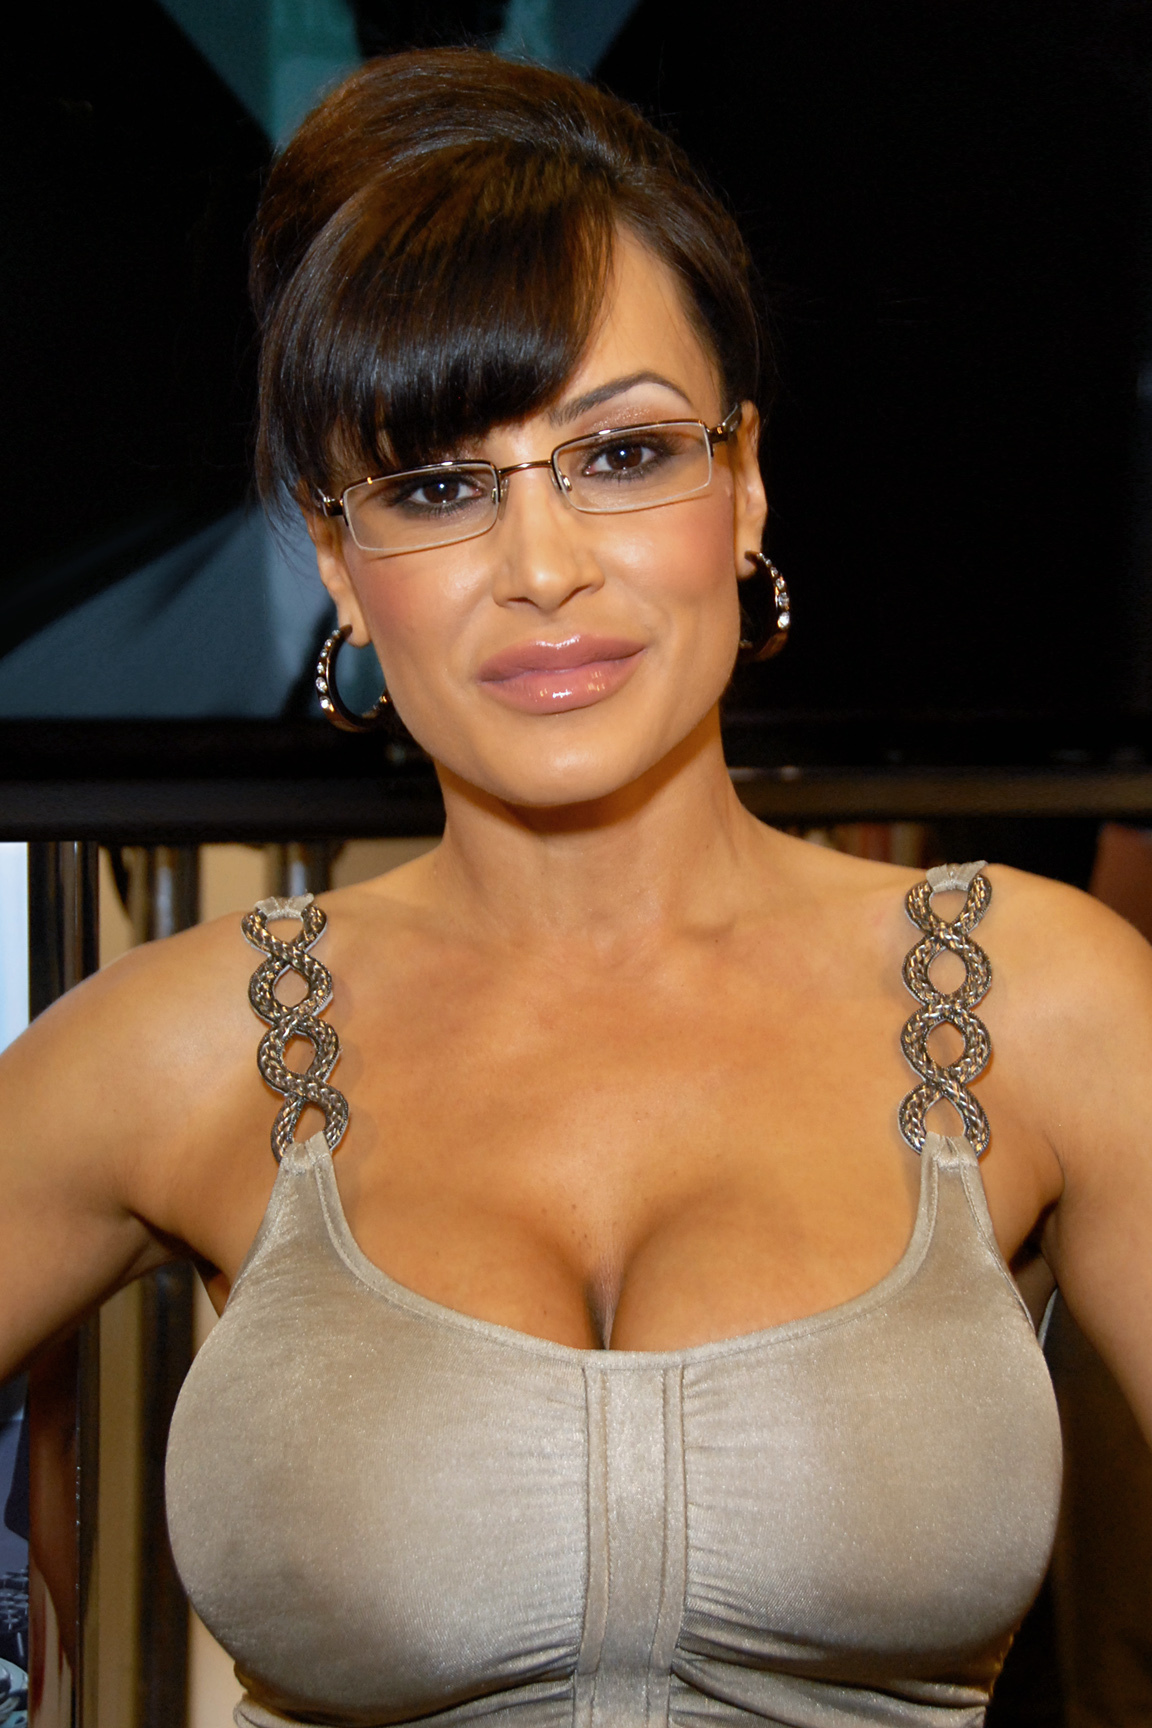 Lisa Ann Wallpapers Images Photos Pictures Backgrounds